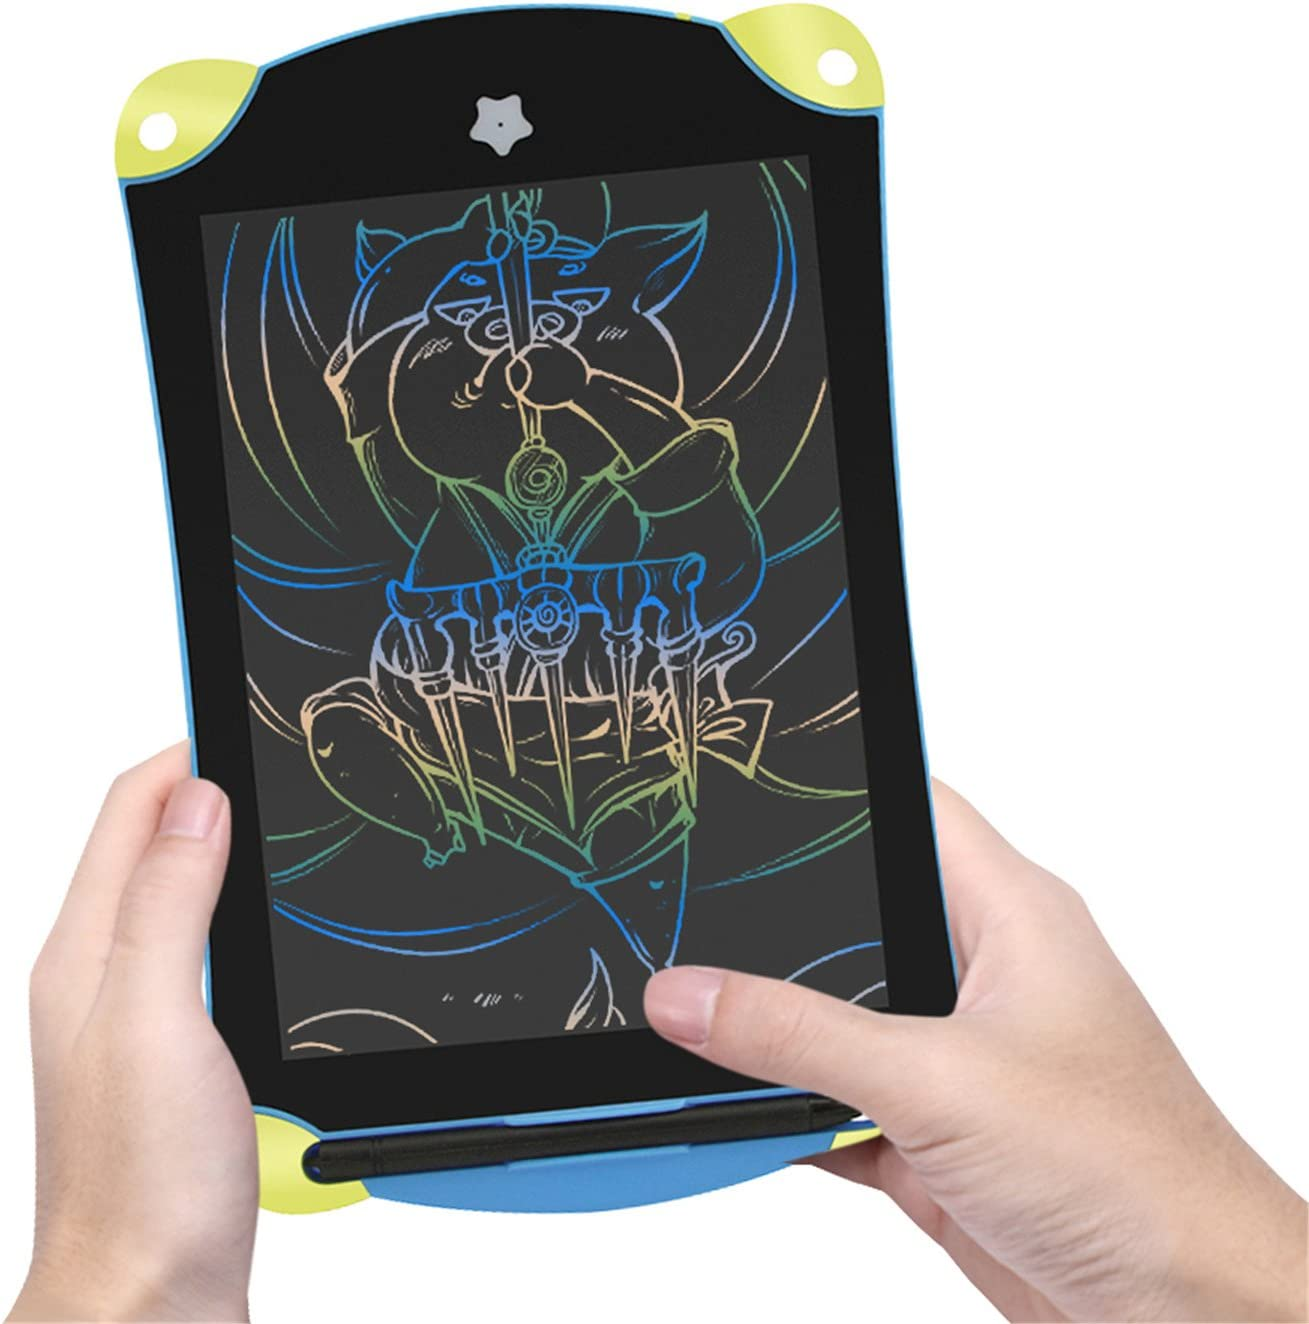 Multicolor 8.5inch LCD Writing Tablet,Colorful Screen Drawing Board,Screen Lock Electronic Writing Board,Portable Drawing Board,Notepad with stylus,Great Gift for Kids,Adults,at Home,School,Work.